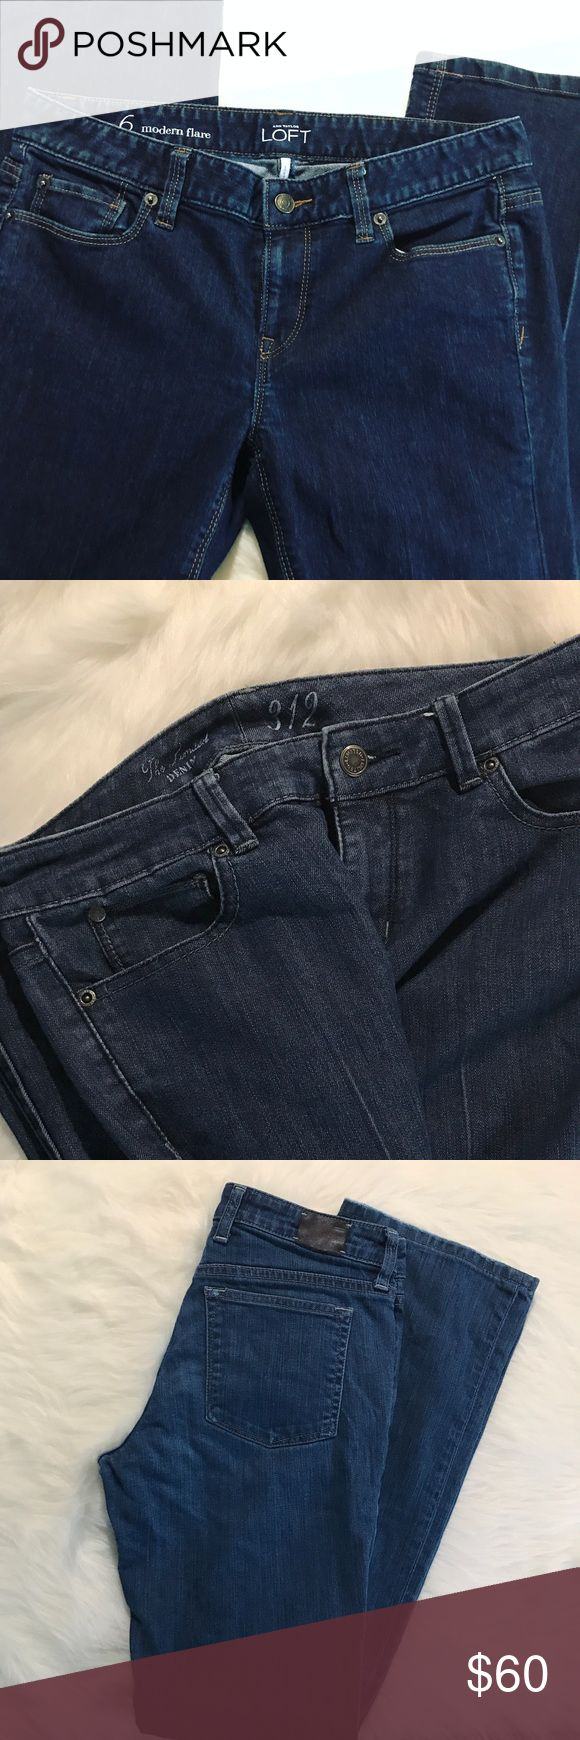 Bundle of 5 Jeans! Banana Republic LOFT Limited... I have 5 size 6 jeans in really good condition that I'd like to offer as a group bundle! In order of the pictures, LOFT, The Limited, Banana Republic, Ann Taylor, Gap. All bootcut with 1 modern flare. $60!! 💙 Not included in closet bundle discount. Banana Republic Jeans